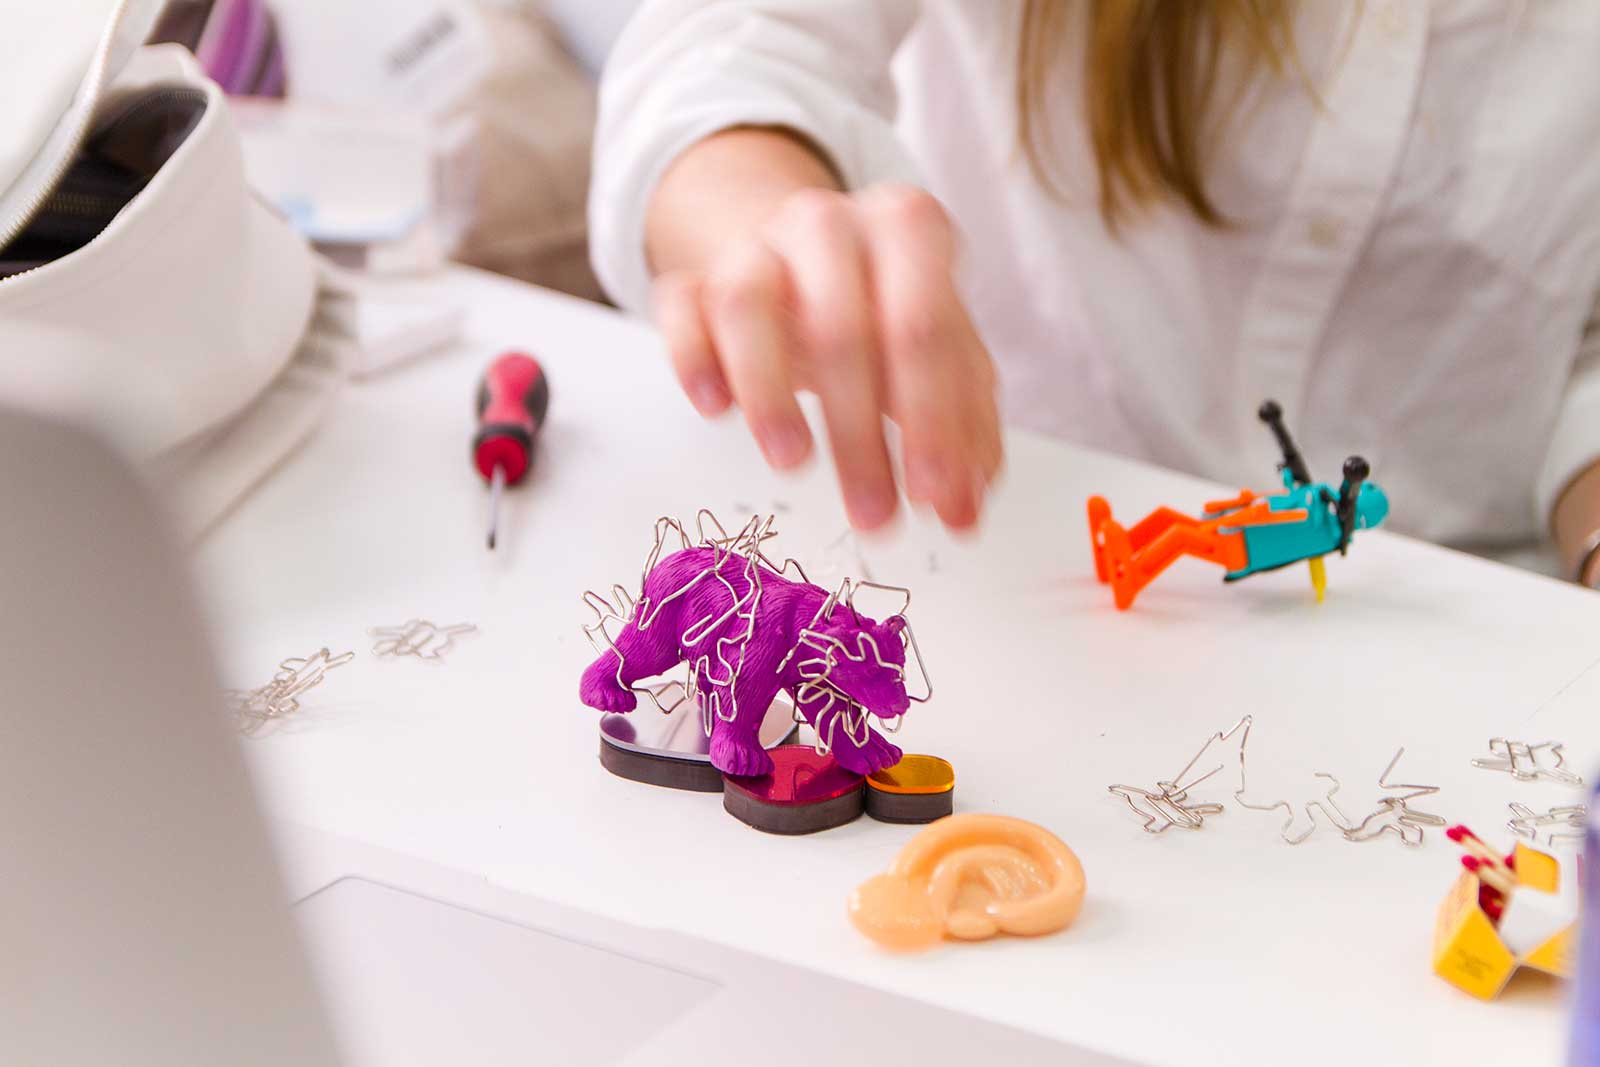 Hacking Toys. Workshop with Raw Color 2016